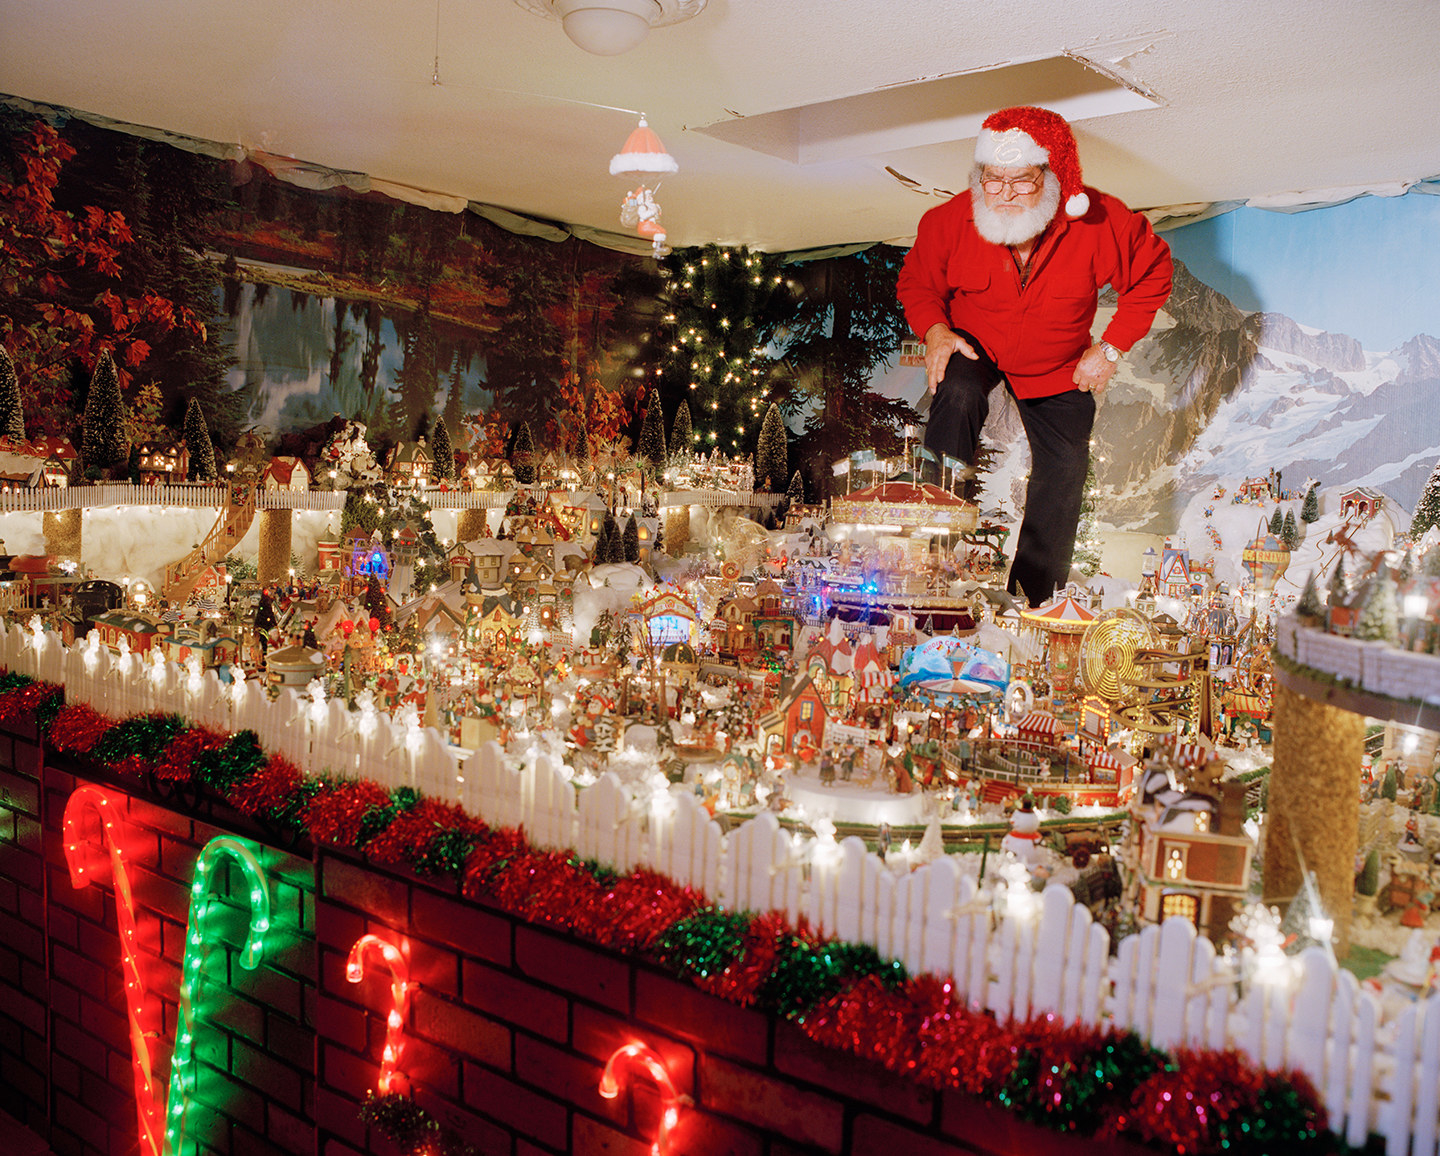 A man dressed as Santa stands above and peers over a miniature lit-up city display